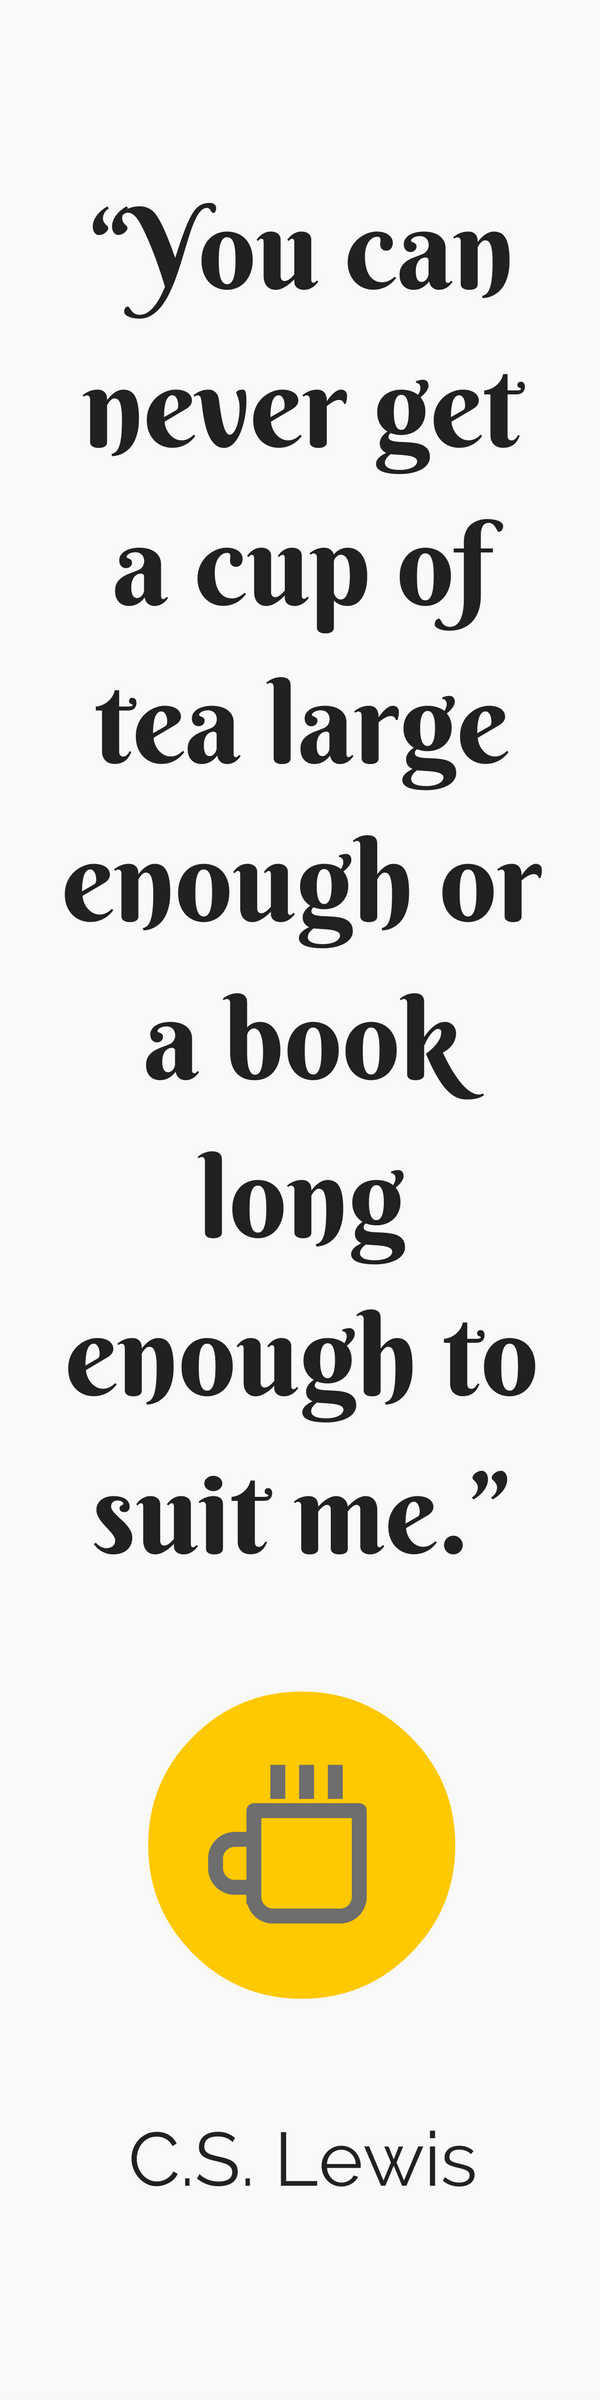 "Free printable bookmark: """"You can never get a cup of tea large enough or a book long enough to suit me."" C.S. Lewis quote"